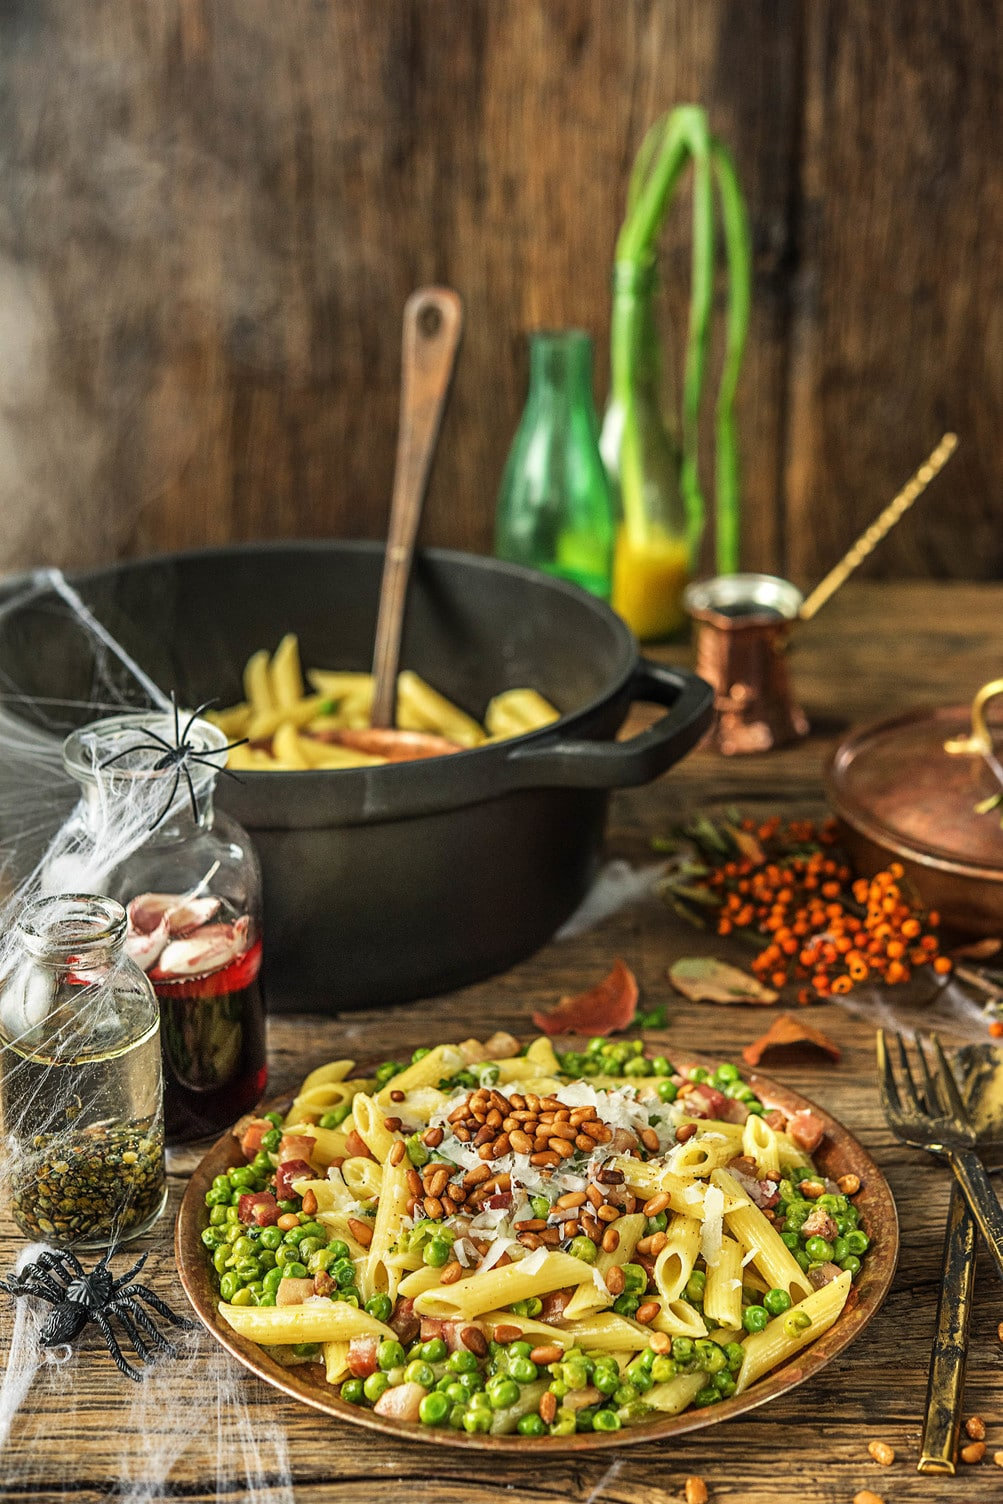 Halloween Dinner Recipes With Pictures.4 Hassle Free Halloween Dinner Ideas The Fresh Times